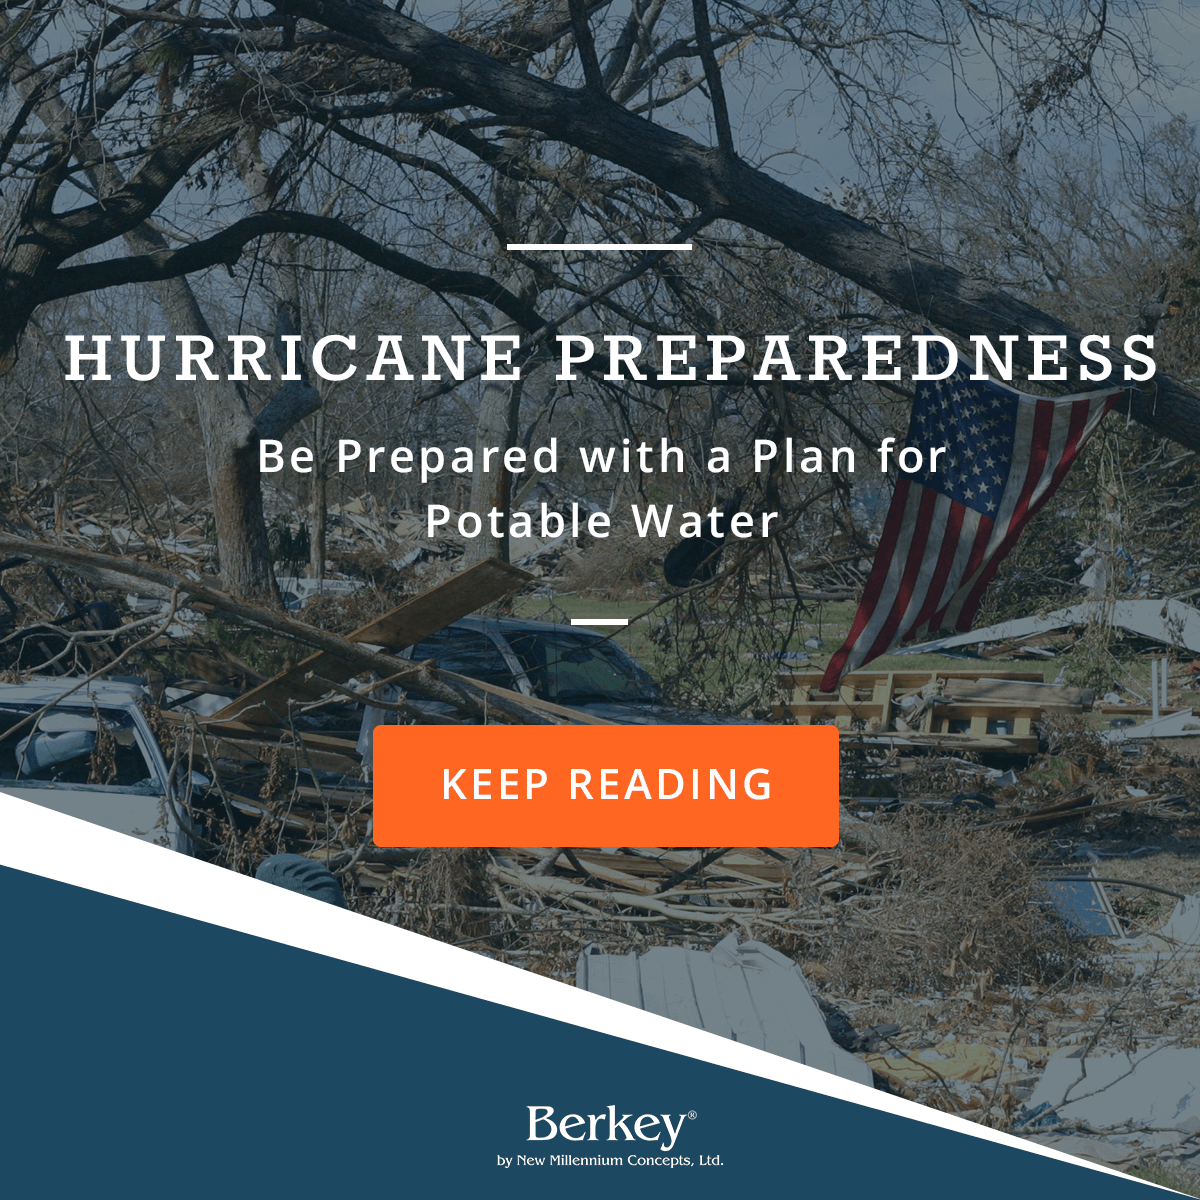 Hurricane Preparedness: A Plan for Potable Water